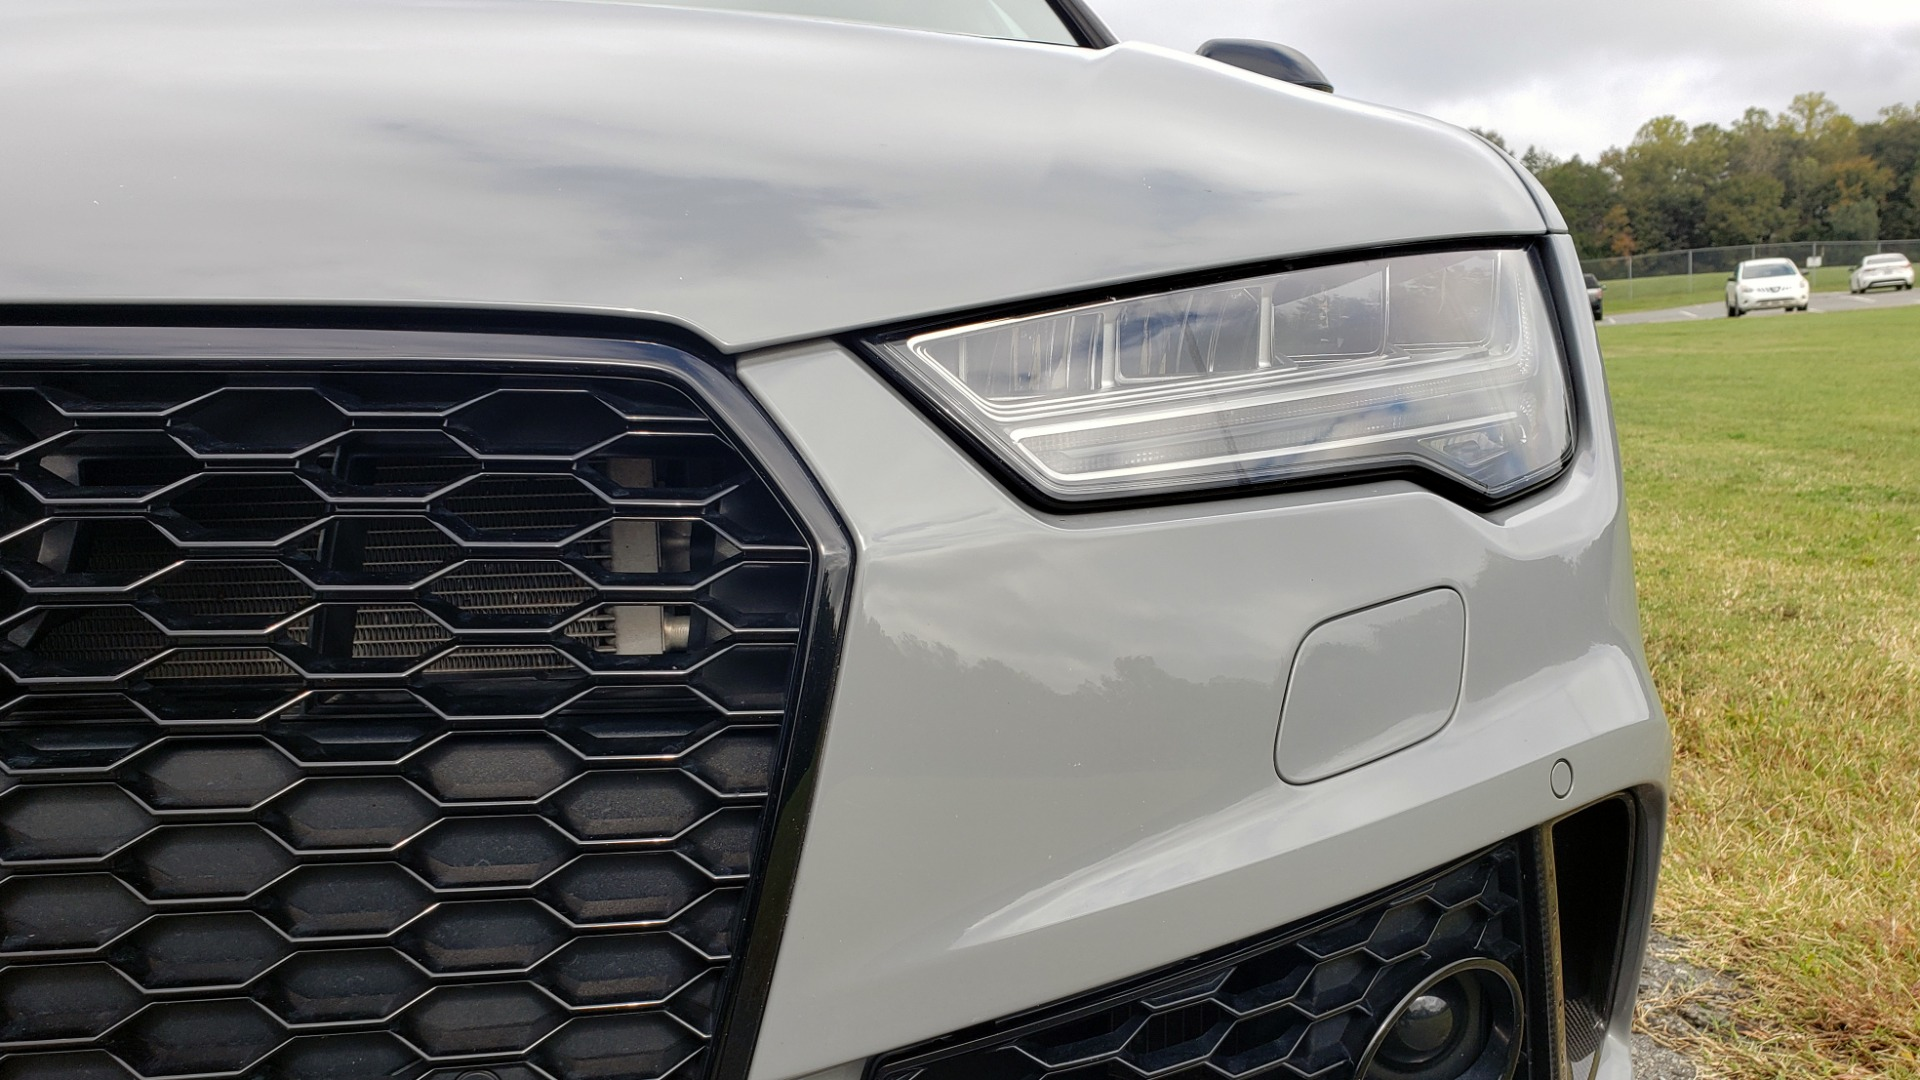 Used 2018 Audi RS 7 4.0T TIPTRONIC / CARBON OPTIC / DRVR ASST / NAV / REARVIEW / 750HP+ for sale Sold at Formula Imports in Charlotte NC 28227 13